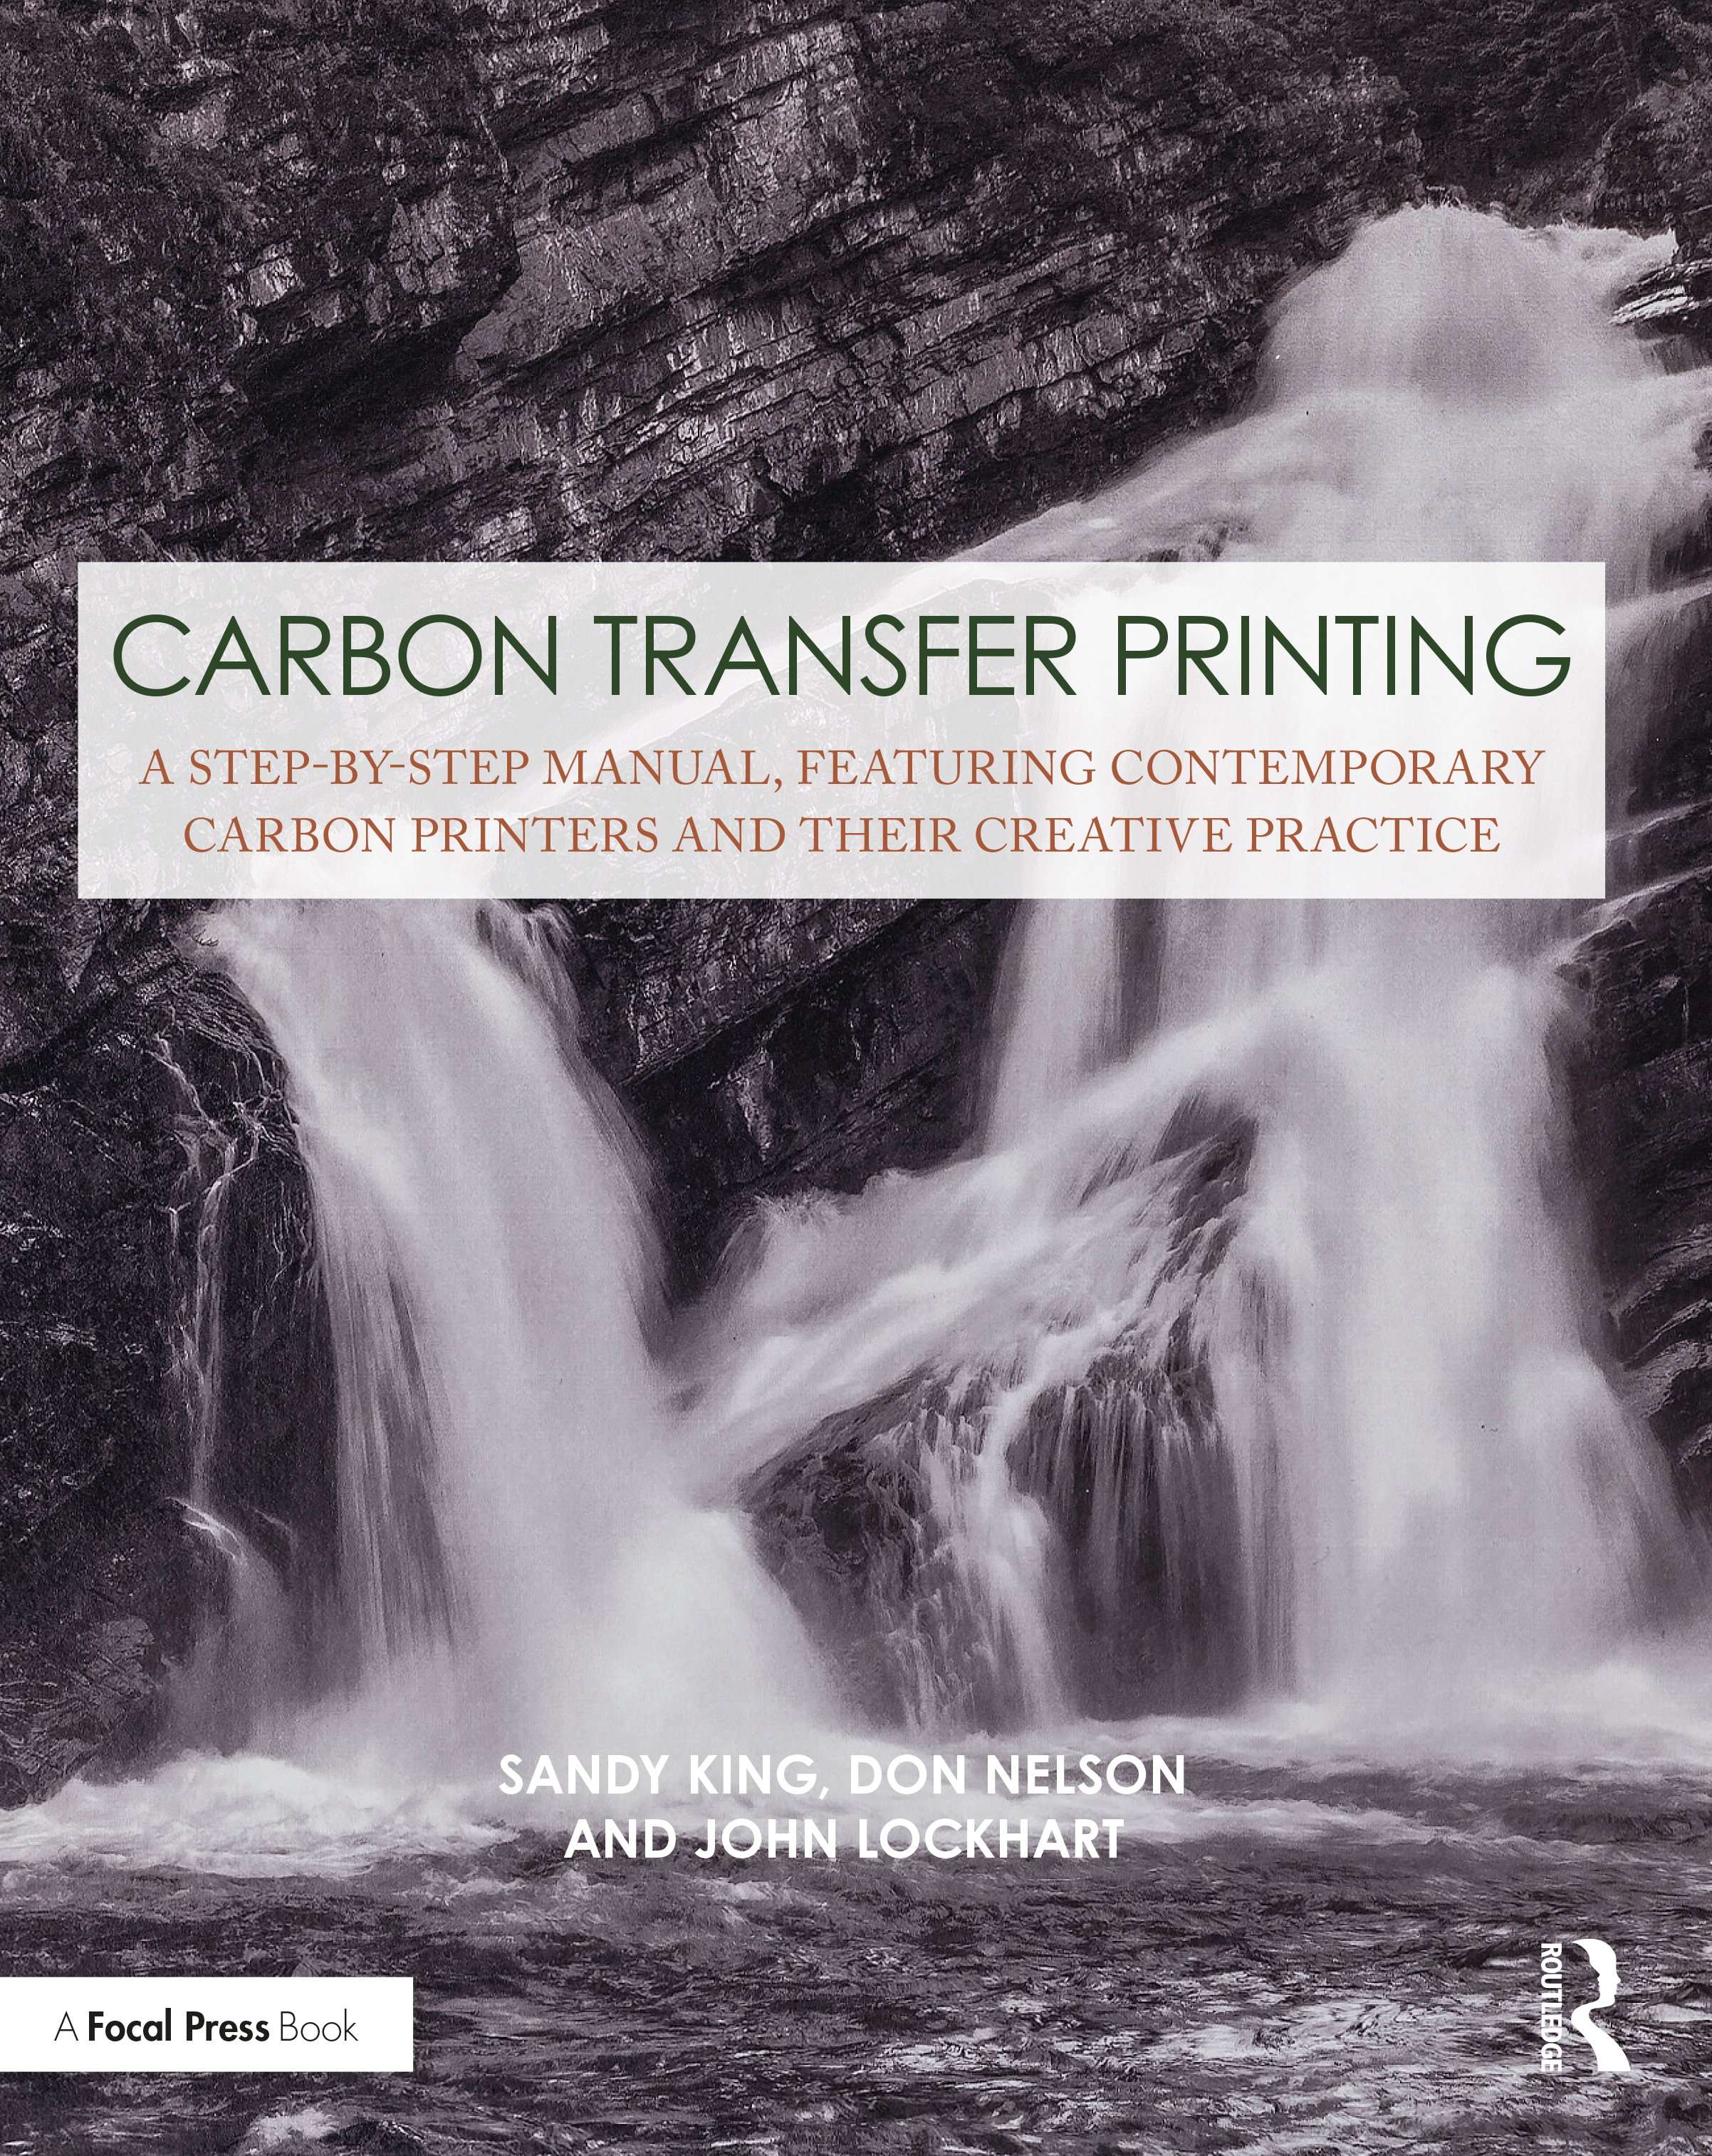 Carbon Transfer Printing: A Step-by-Step Manual, Featuring Contemporary Carbon Printers and Their Creative Practice book cover